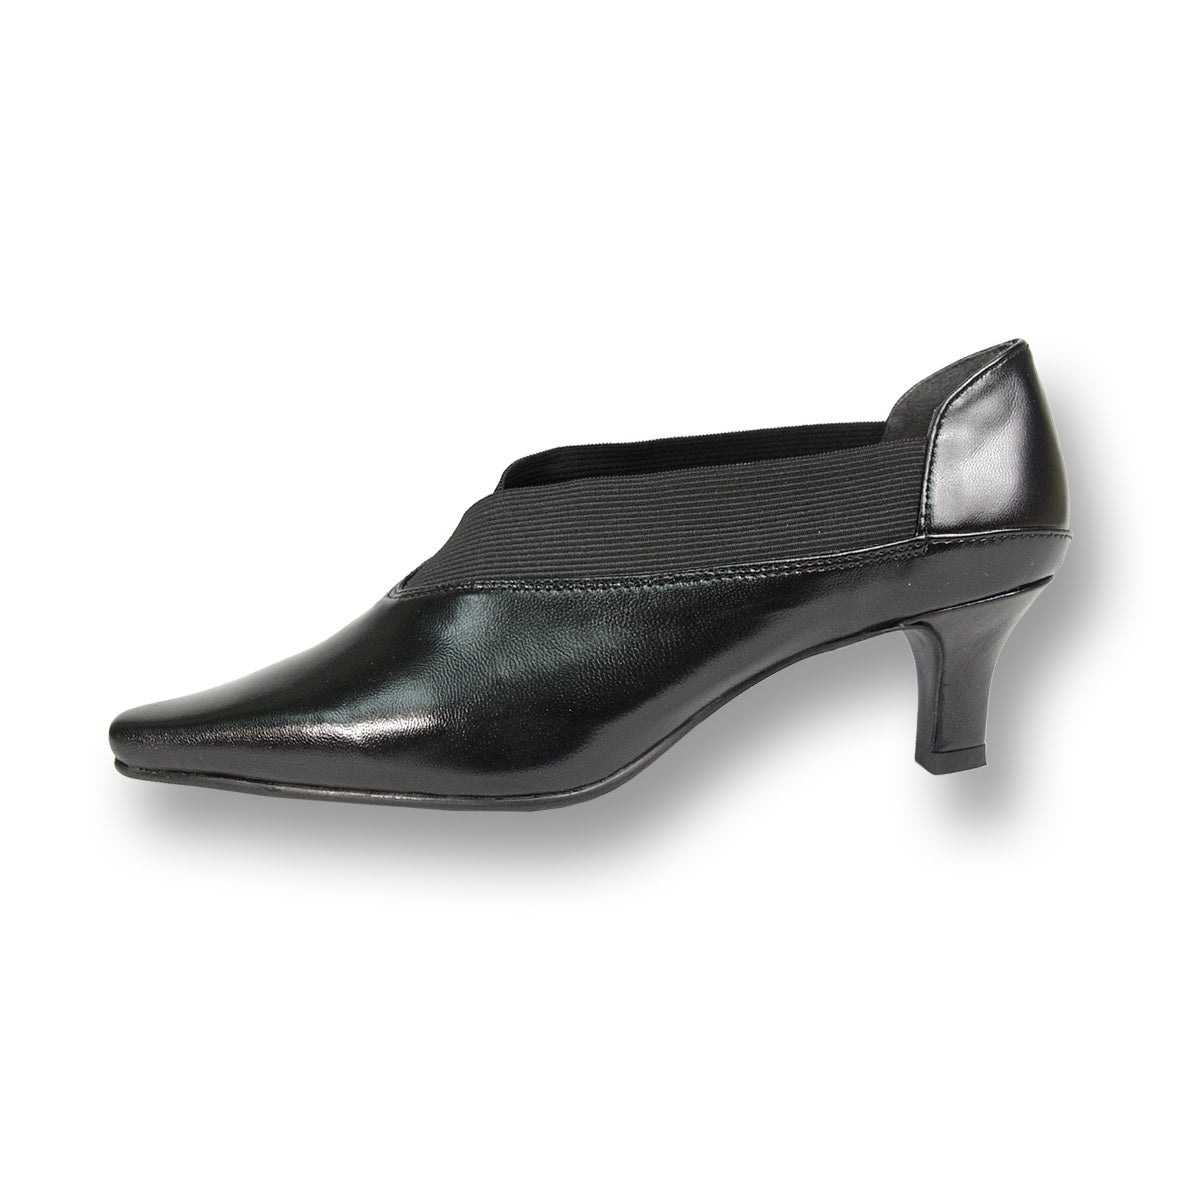 95d1df2c1d3f Shop PEERAGE Rita Women Extra Wide Width Slip-On Leather Pumps with Elastic  - Free Shipping On Orders Over  45 - Overstock - 19224612